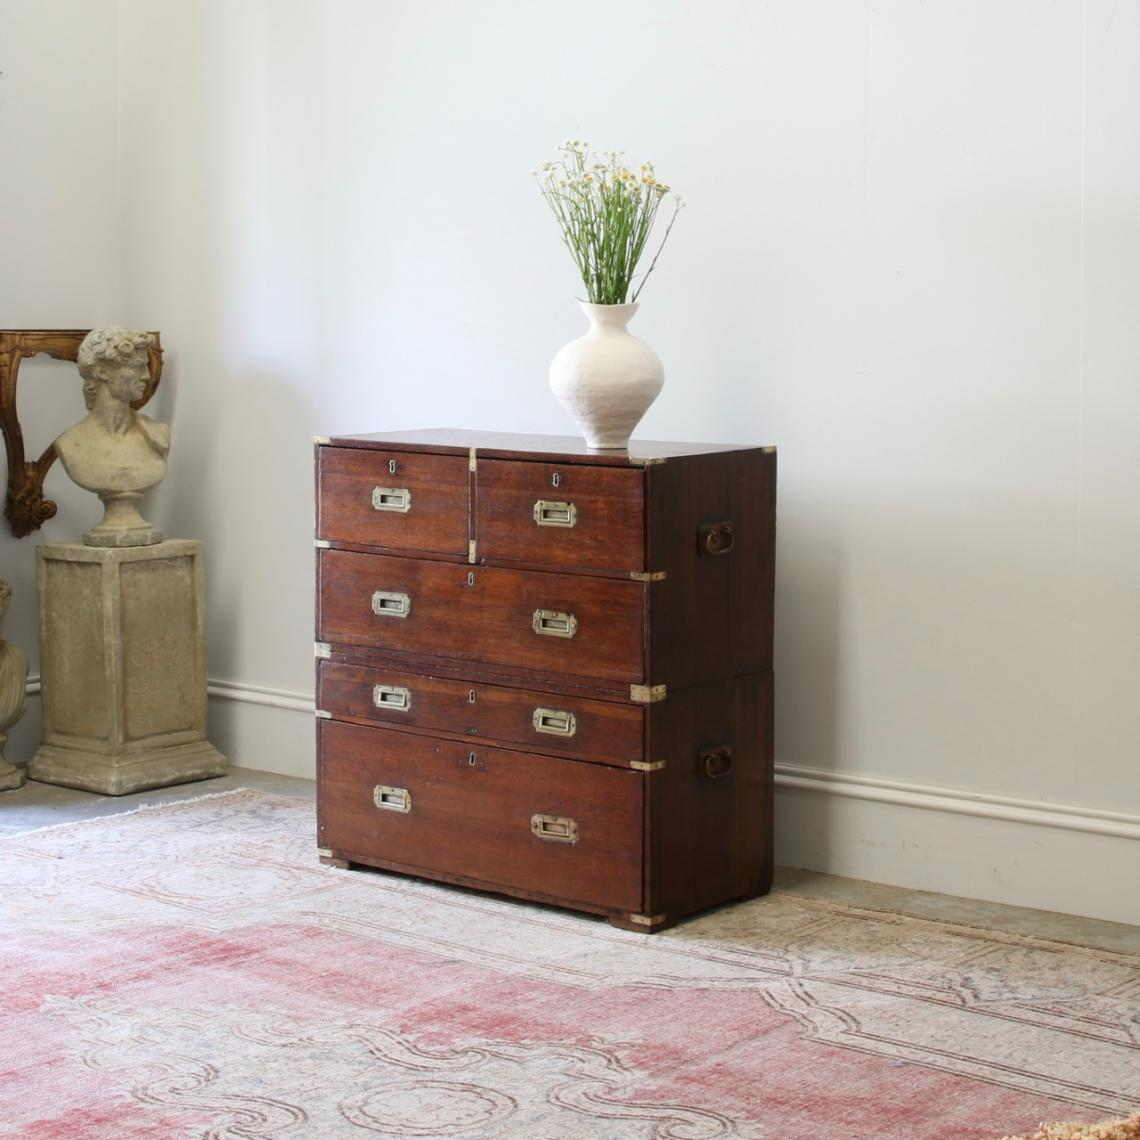 117-84 - English Oak Military Chest